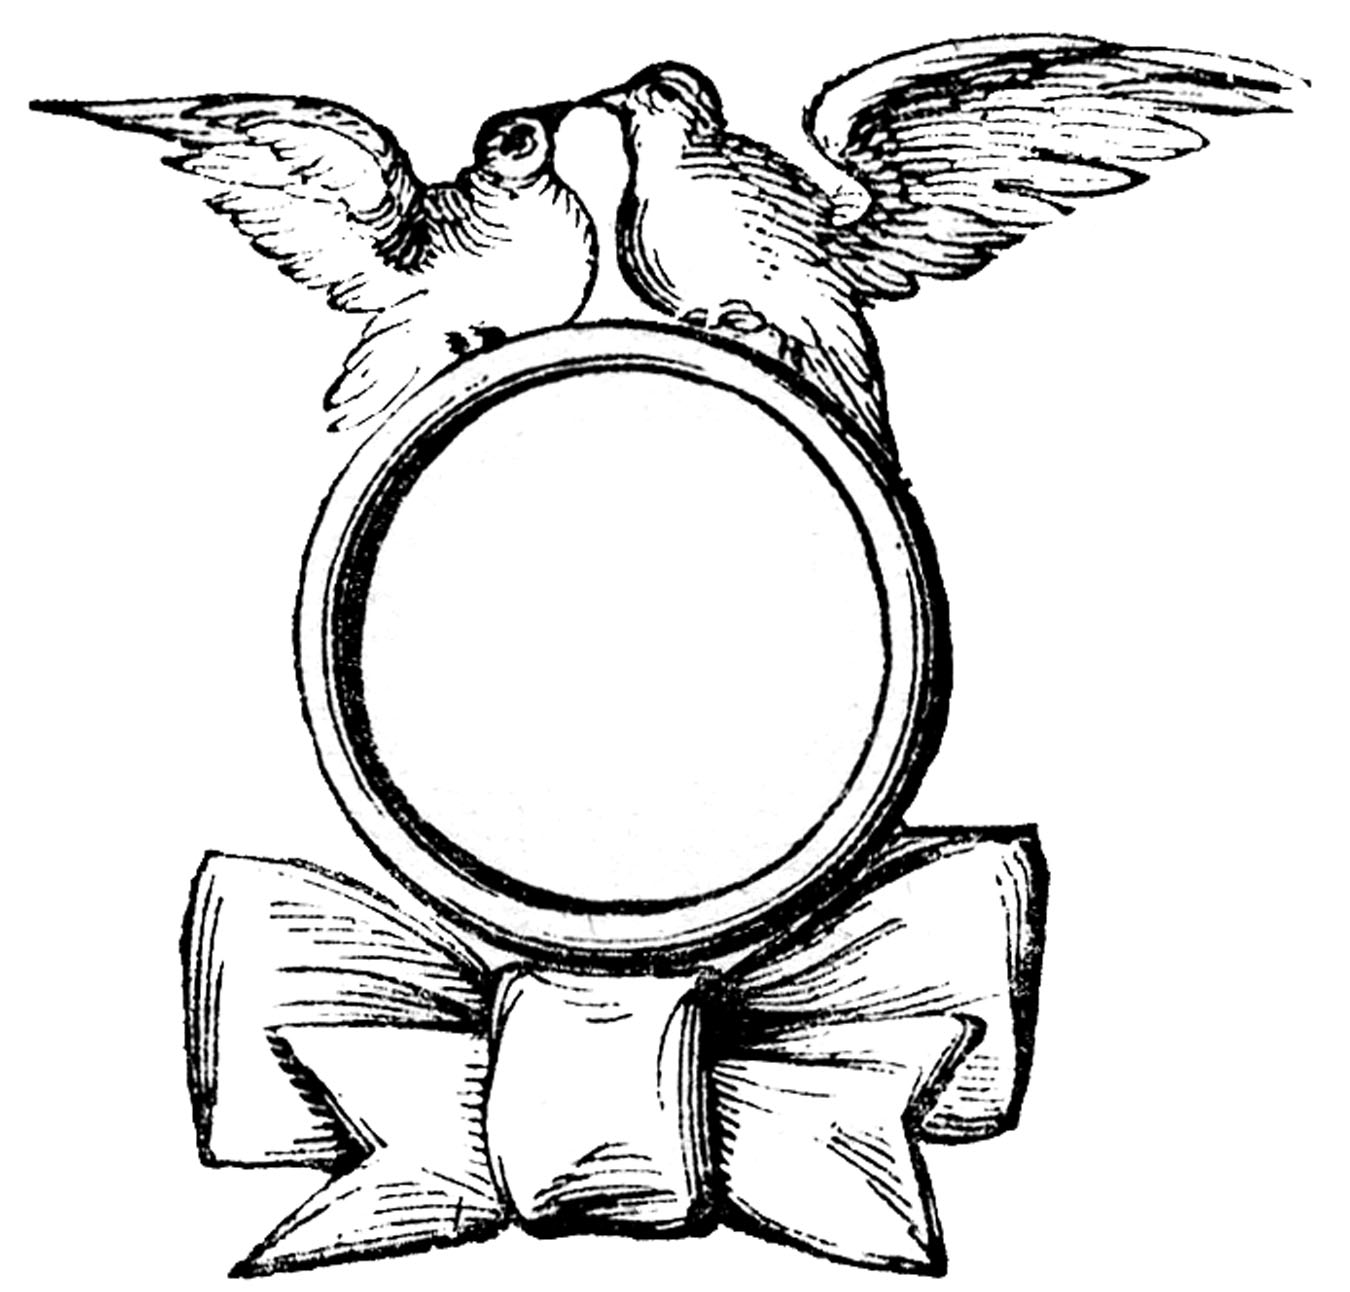 Symbols Of Marriage Marriage Cliparts - ClipArt Best